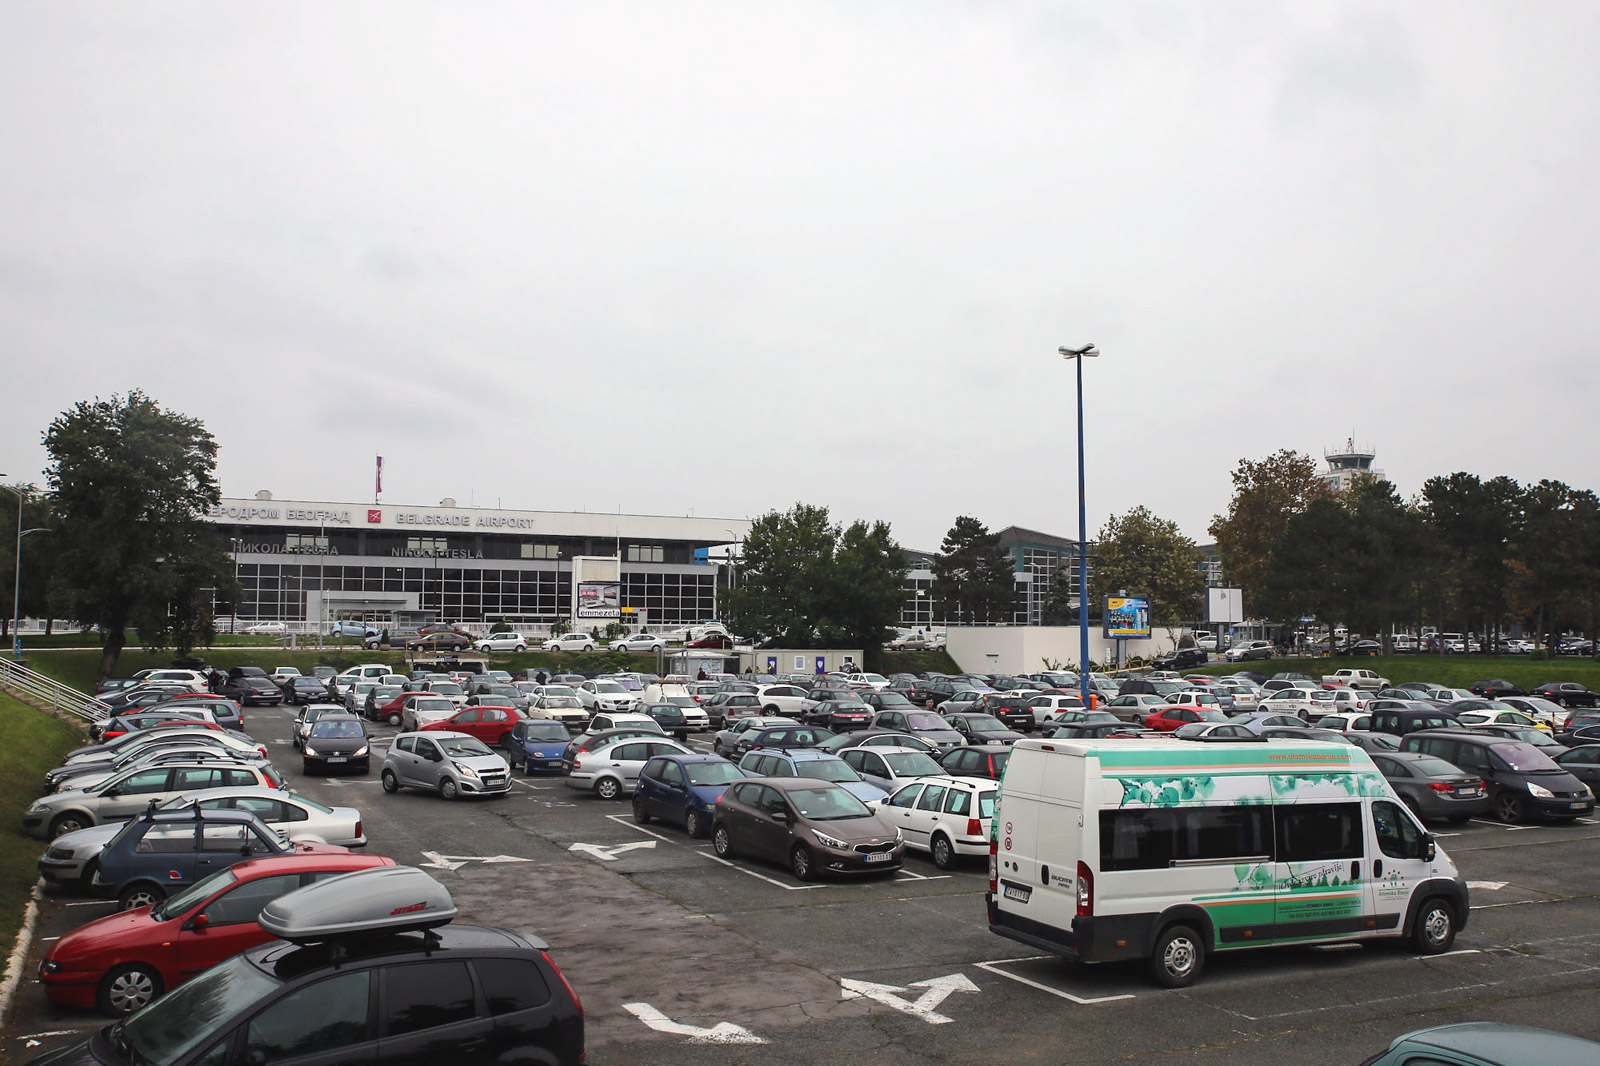 Parking on the forecourt of the airport Belgrade Nikola Tesla